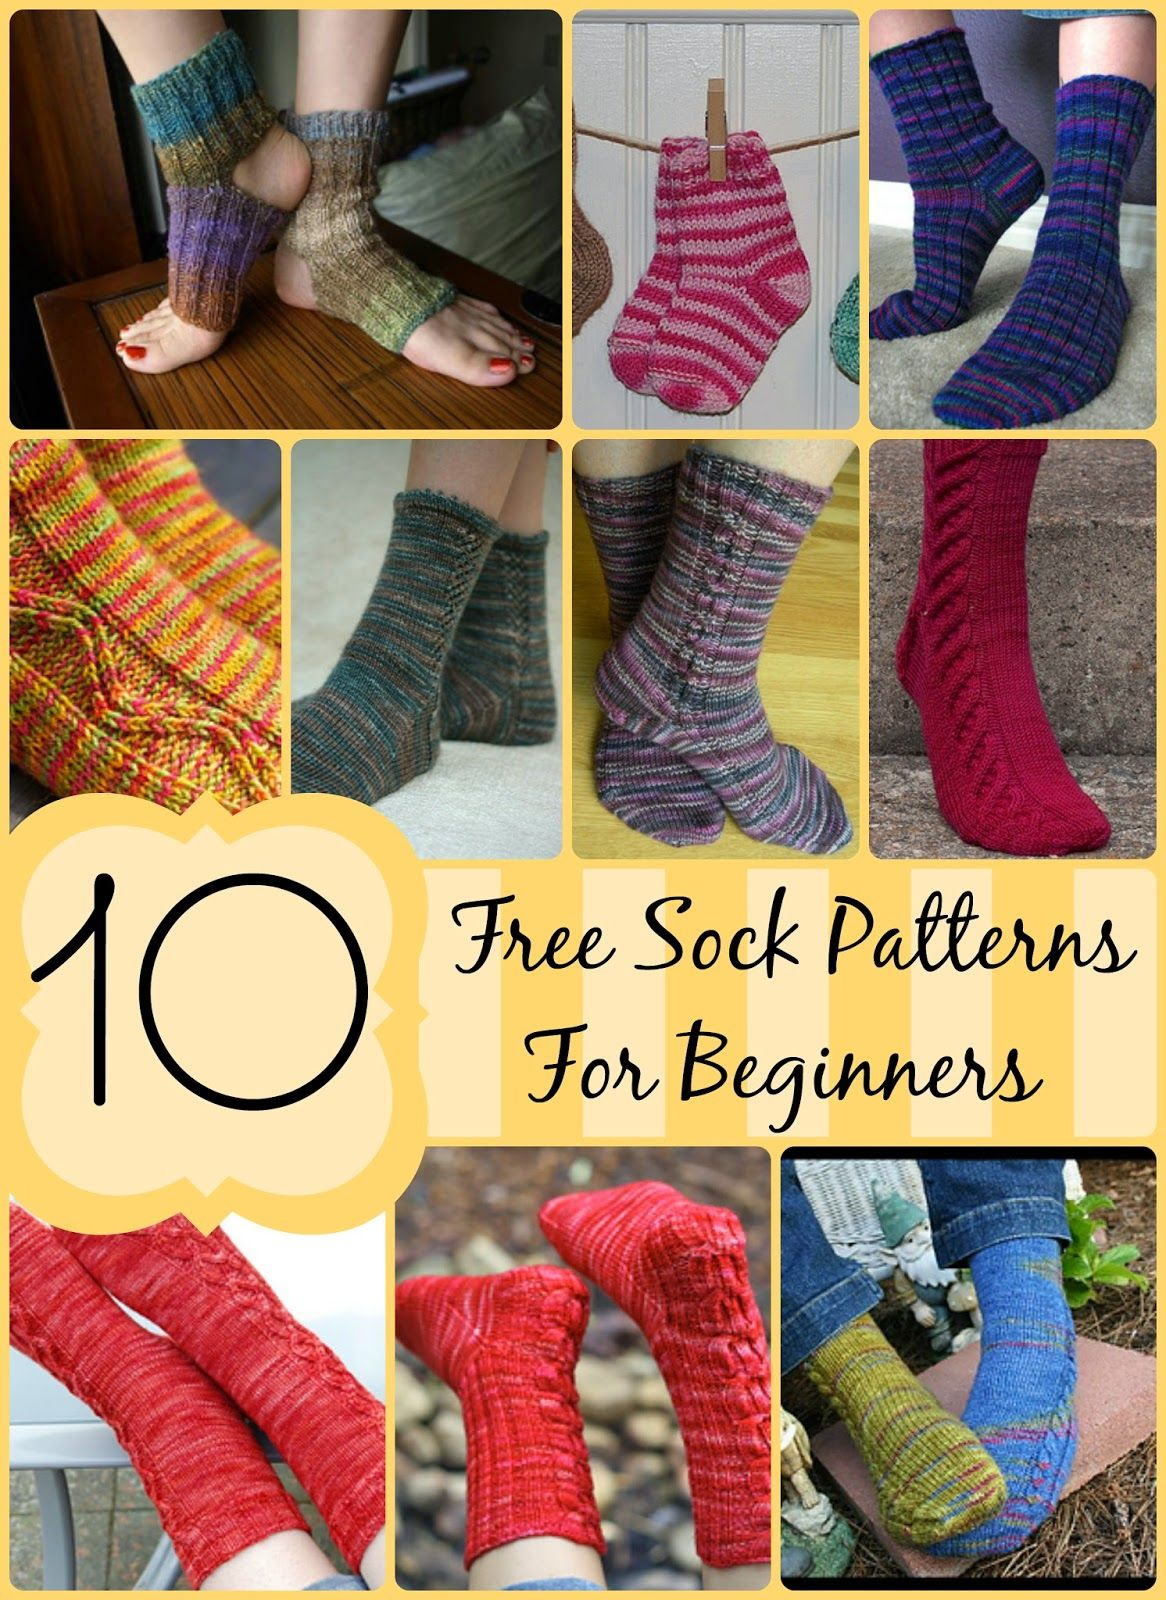 Knitting Socks For Beginners : Free sock patterns for beginners easy to make